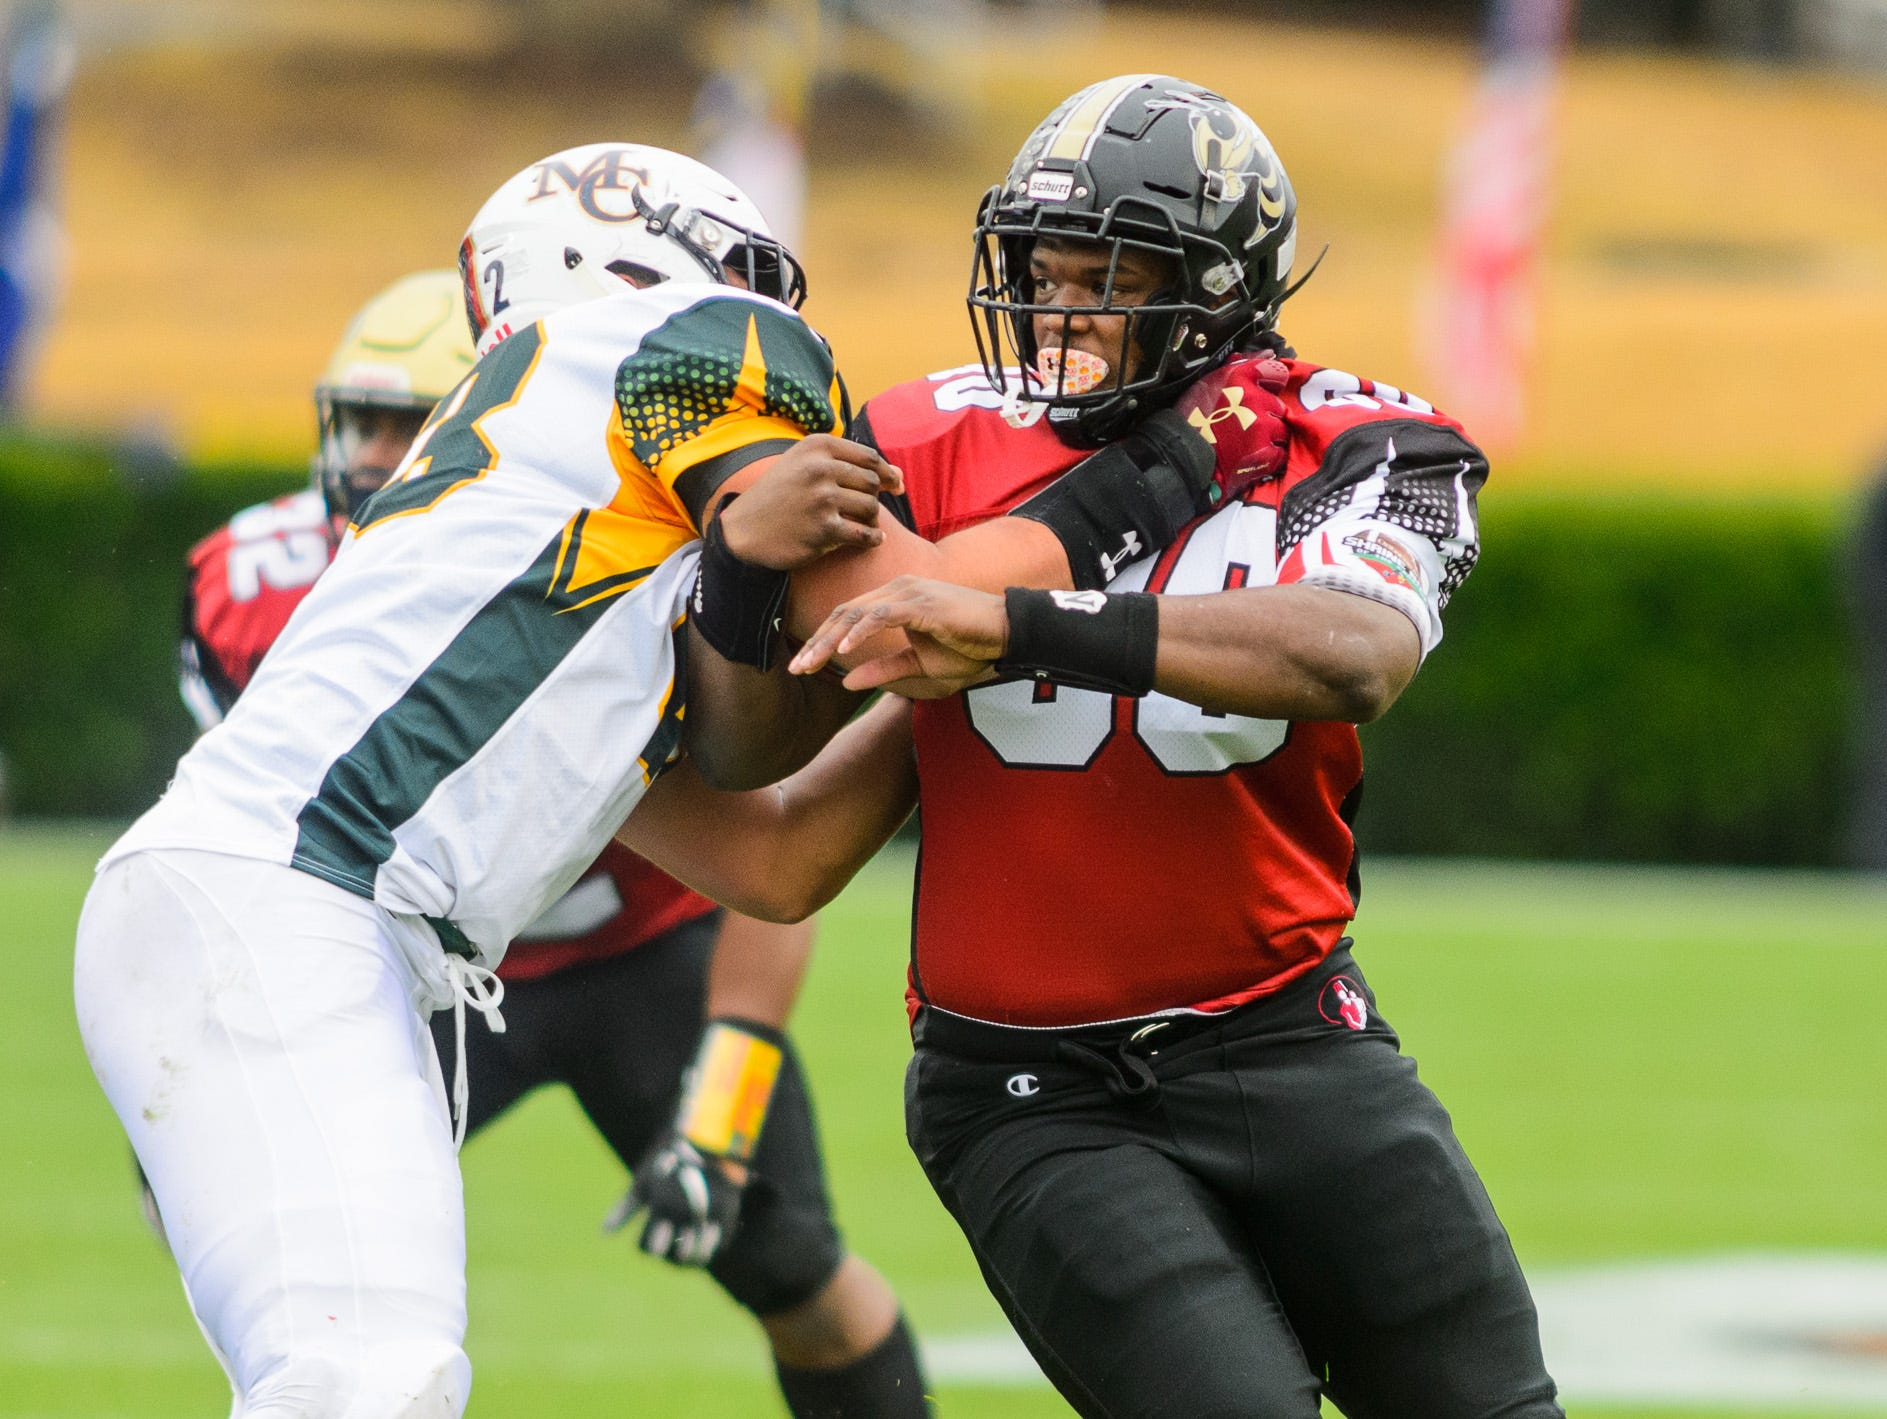 8T.L. Hanna defensive lineman Zacch Pickens (90) tries the get around a blocker during the 82nd annual Shrine Bowl of the Carolinas on Saturday, December 15, 2018 at Wofford's Gibbs Stadium in Spartanburg, SC.